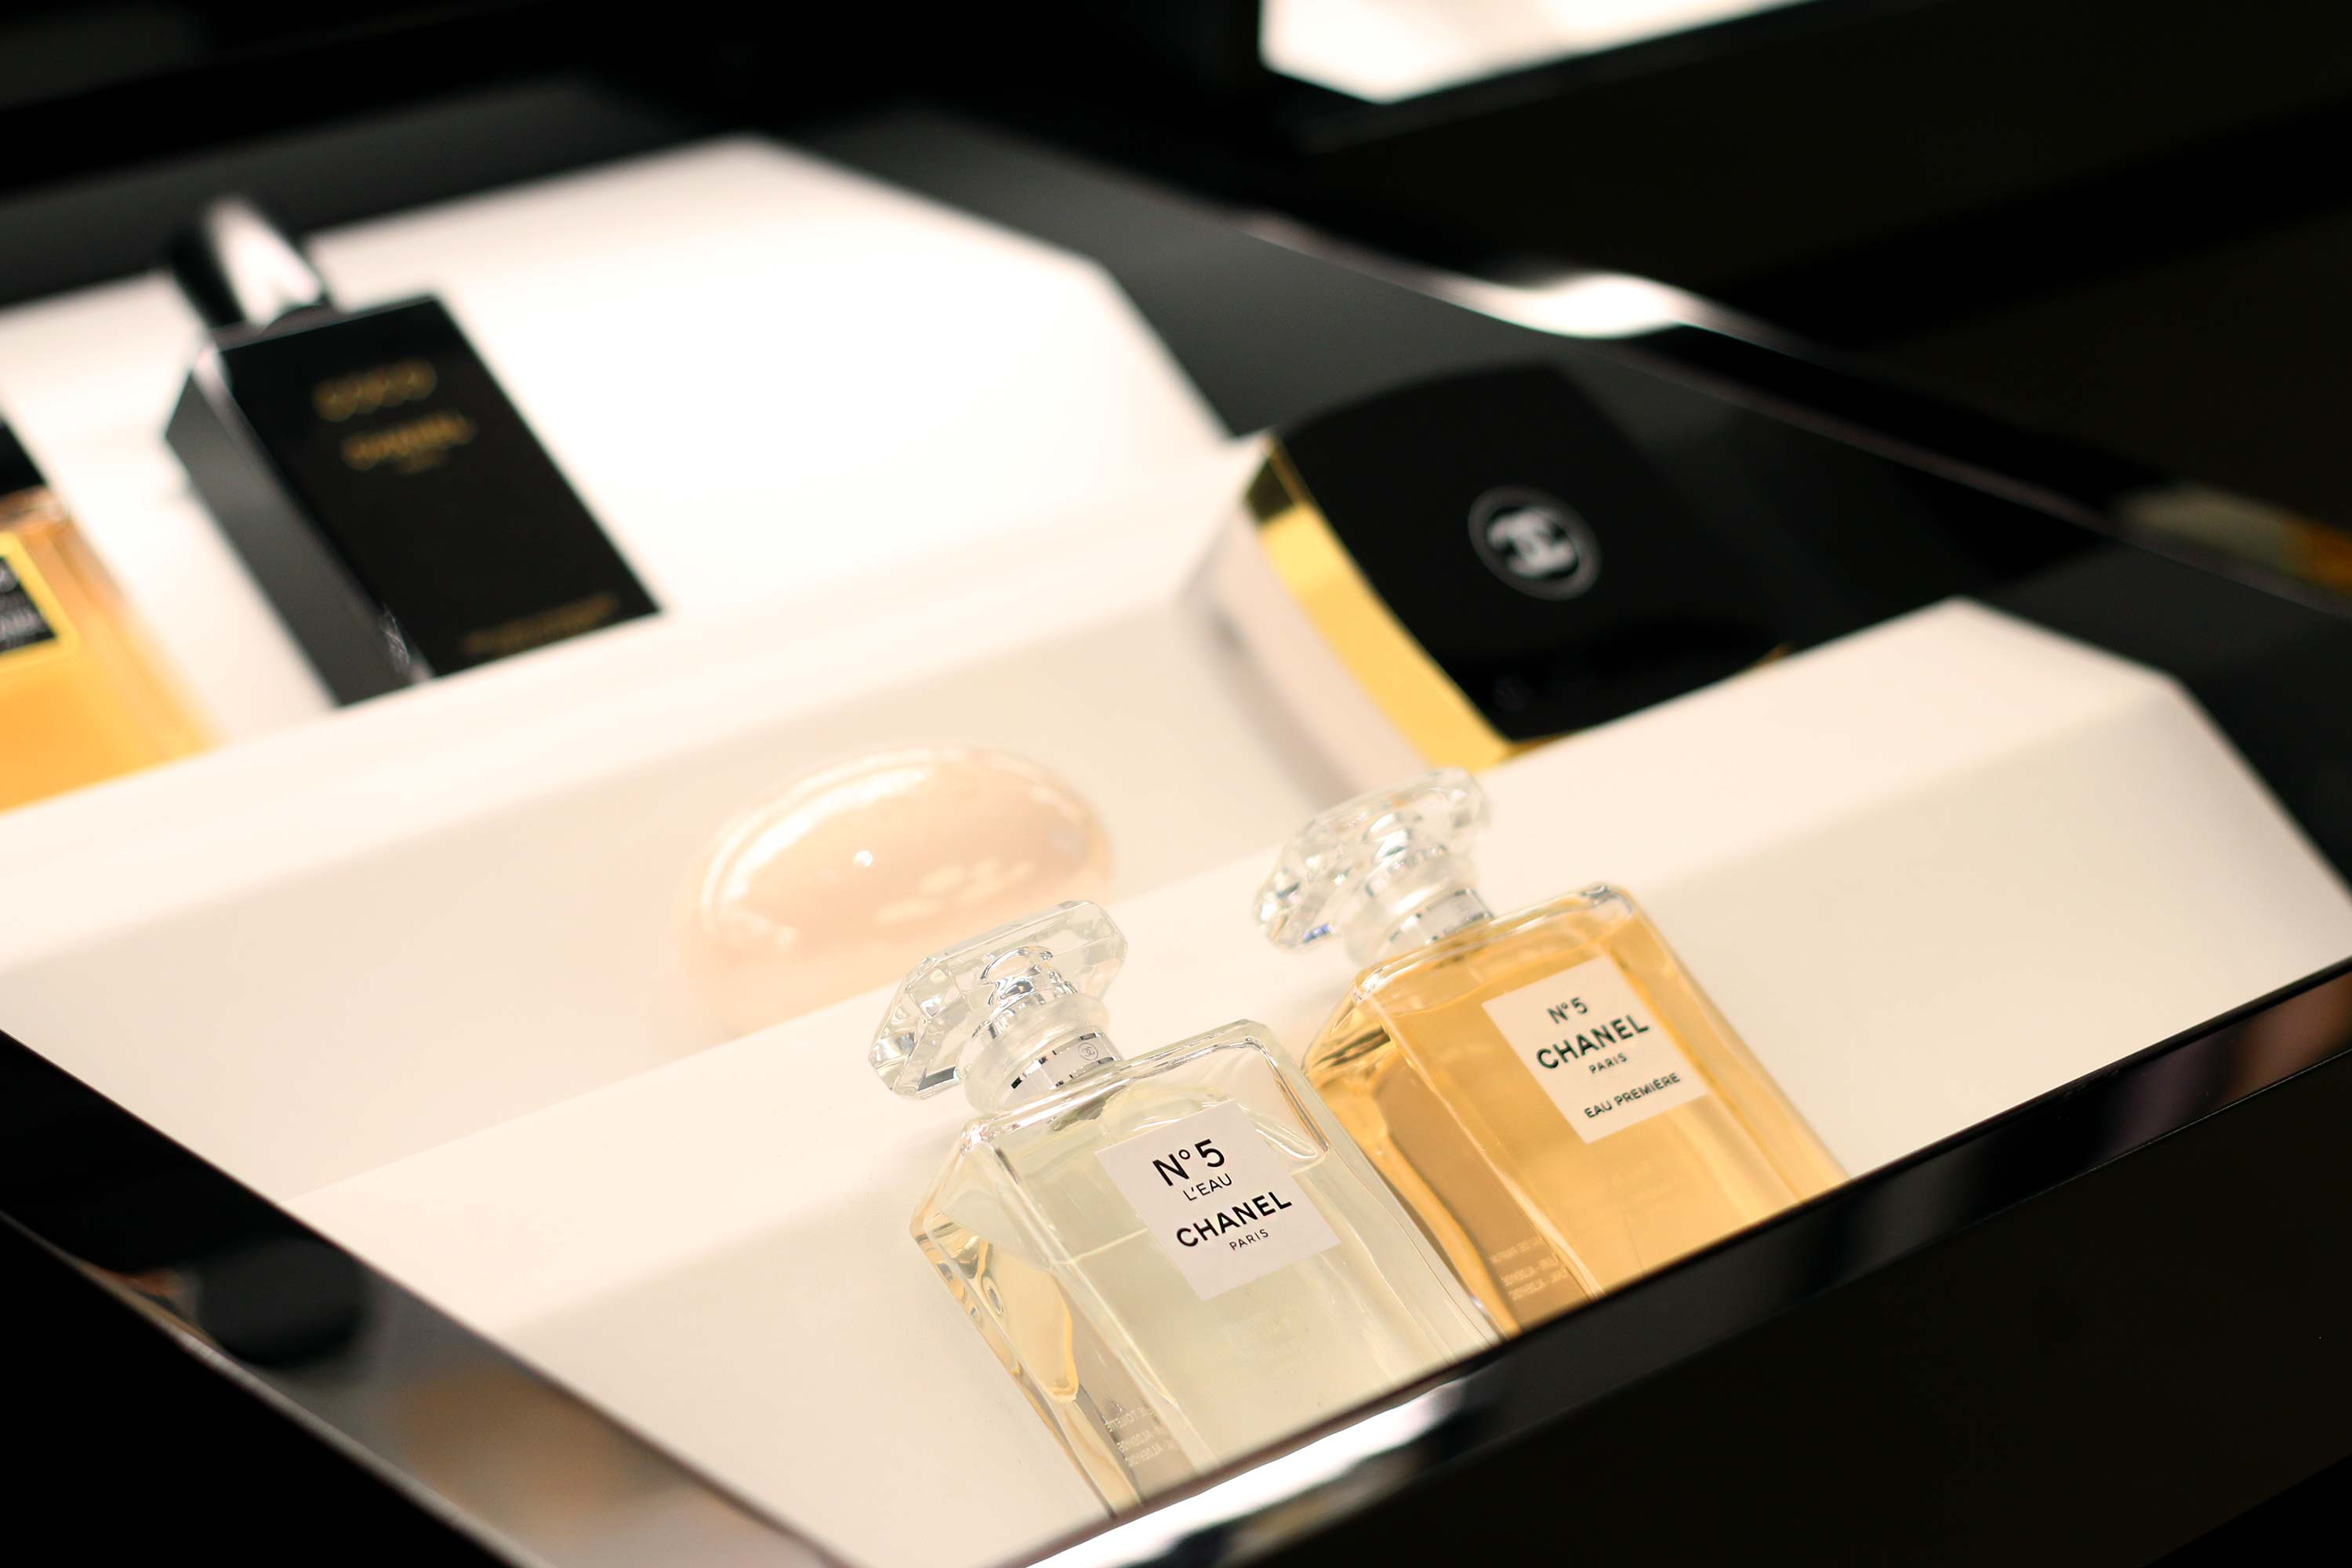 chanel-beauty-boutique-hamburg-9